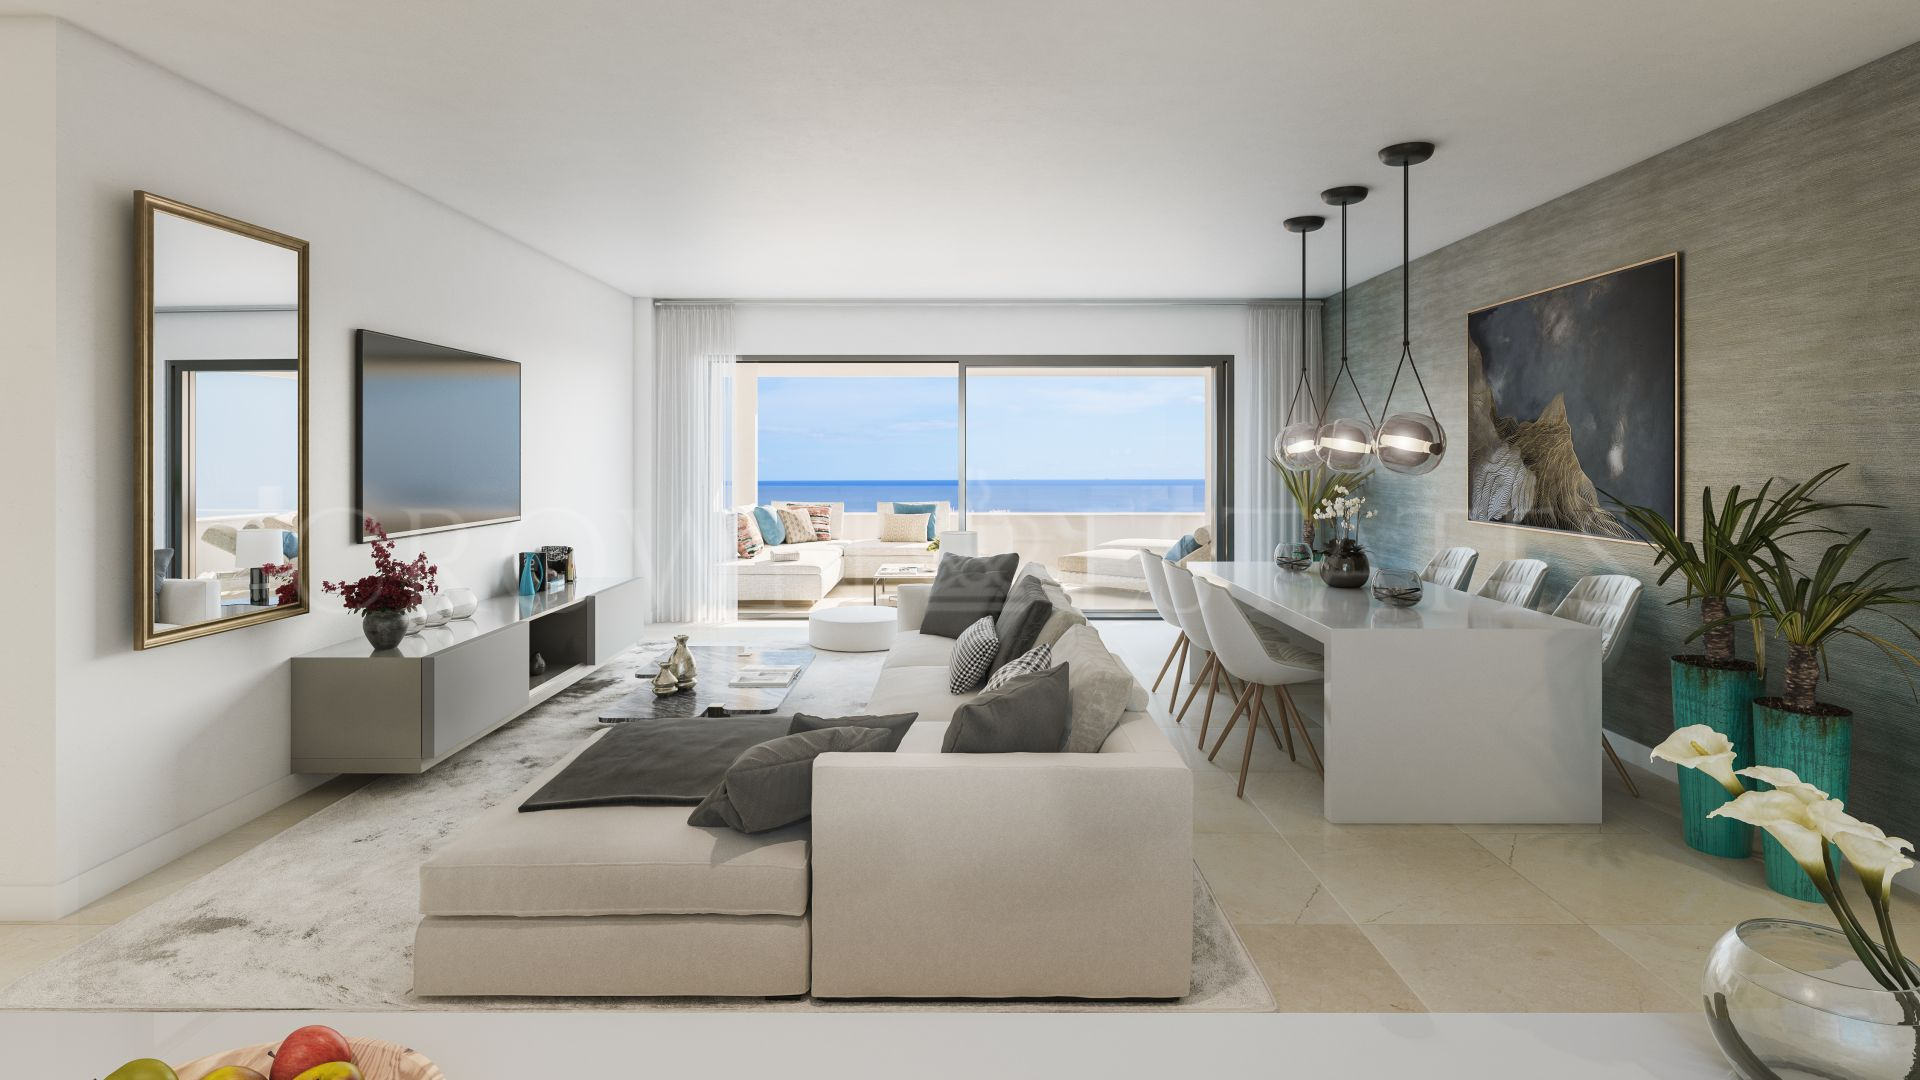 South Bay Las Mesas II, avant-garde homes with priveleged sea views in Estepona town